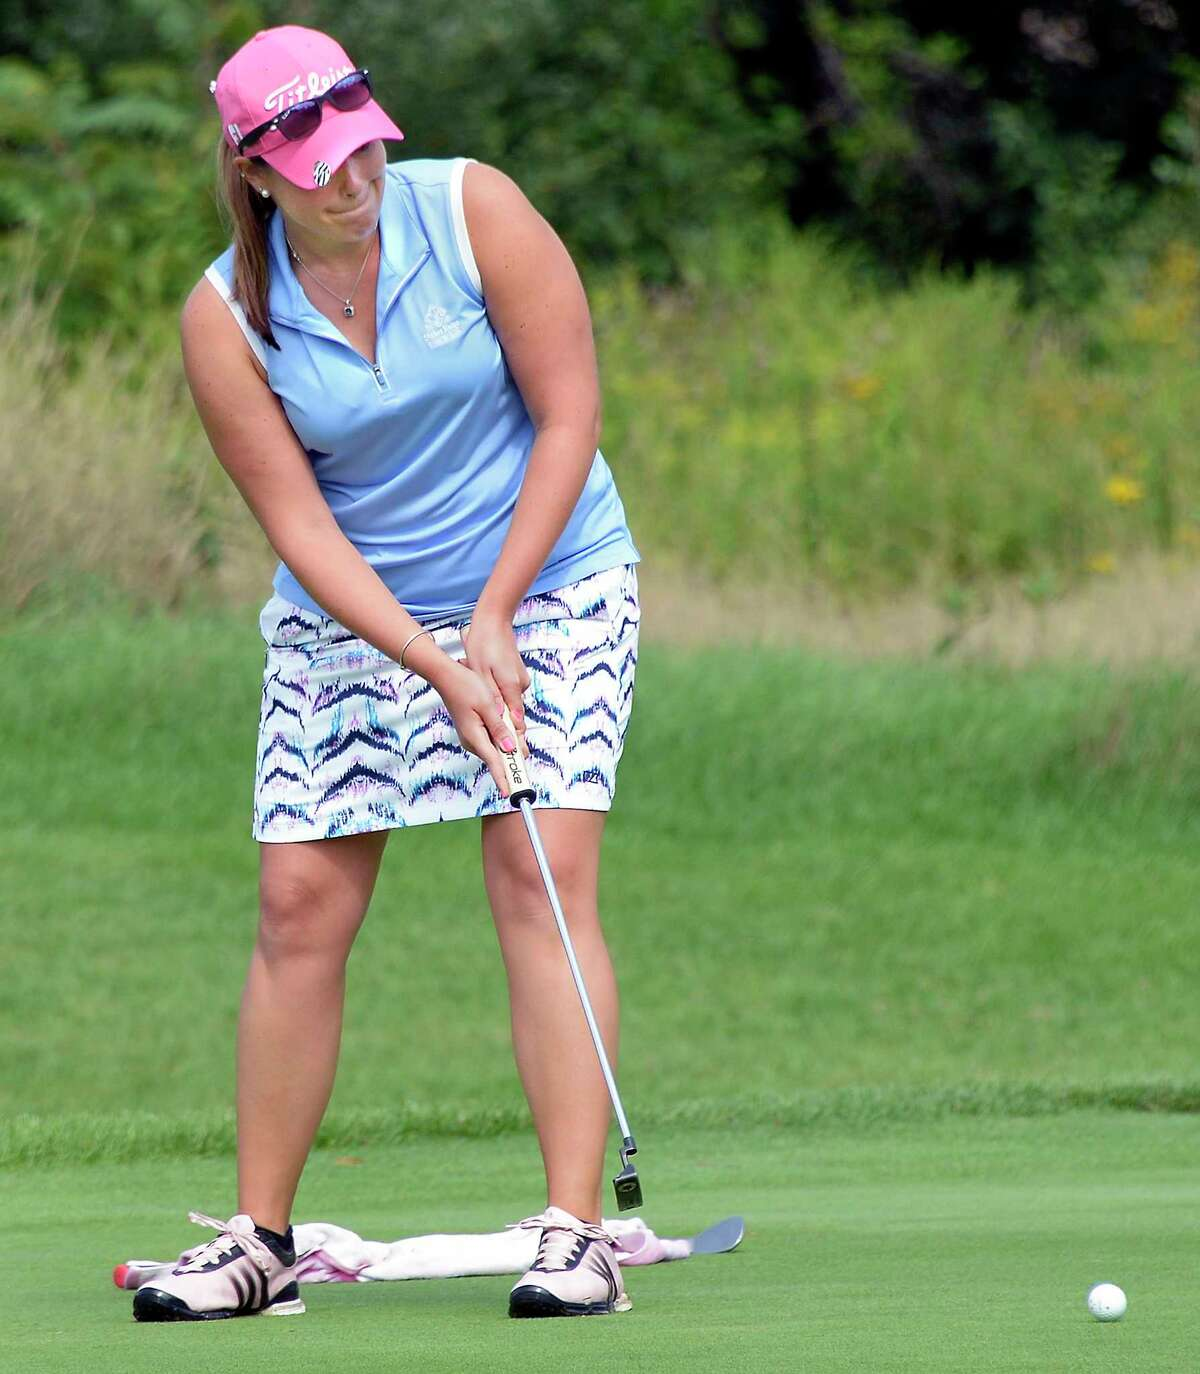 Rachel Barlette putts in the final round of the Northeastern Women's Golf Association championship at Colonie Golf and Country Club Wednesday August 15, 2018 in Voorheesville, NY. (John Carl D'Annibale/Times Union)